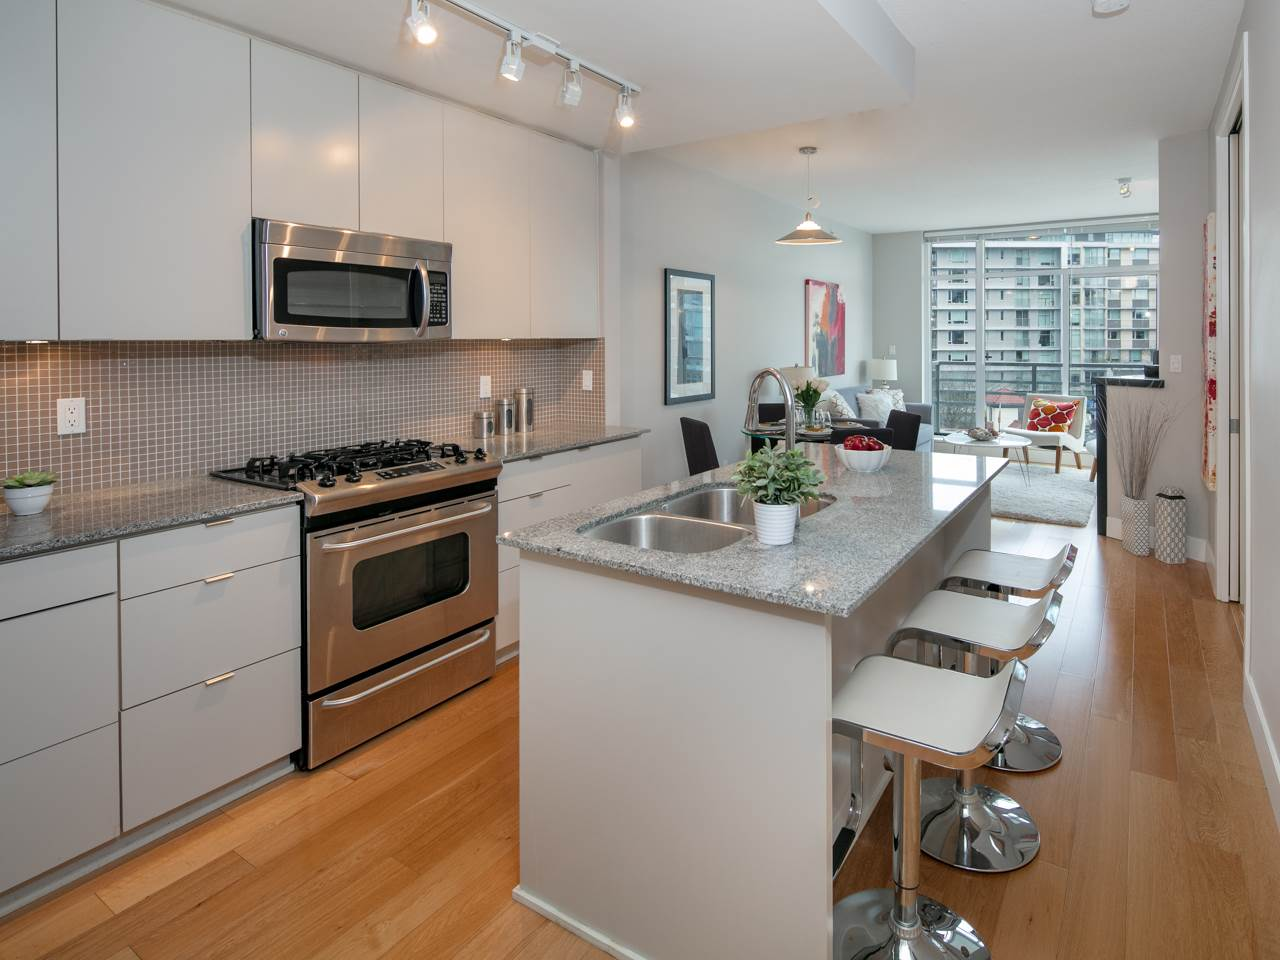 "Photo 3: 512 298 E 11TH Avenue in Vancouver: Mount Pleasant VE Condo for sale in ""The Sophia"" (Vancouver East)  : MLS(r) # R2124368"